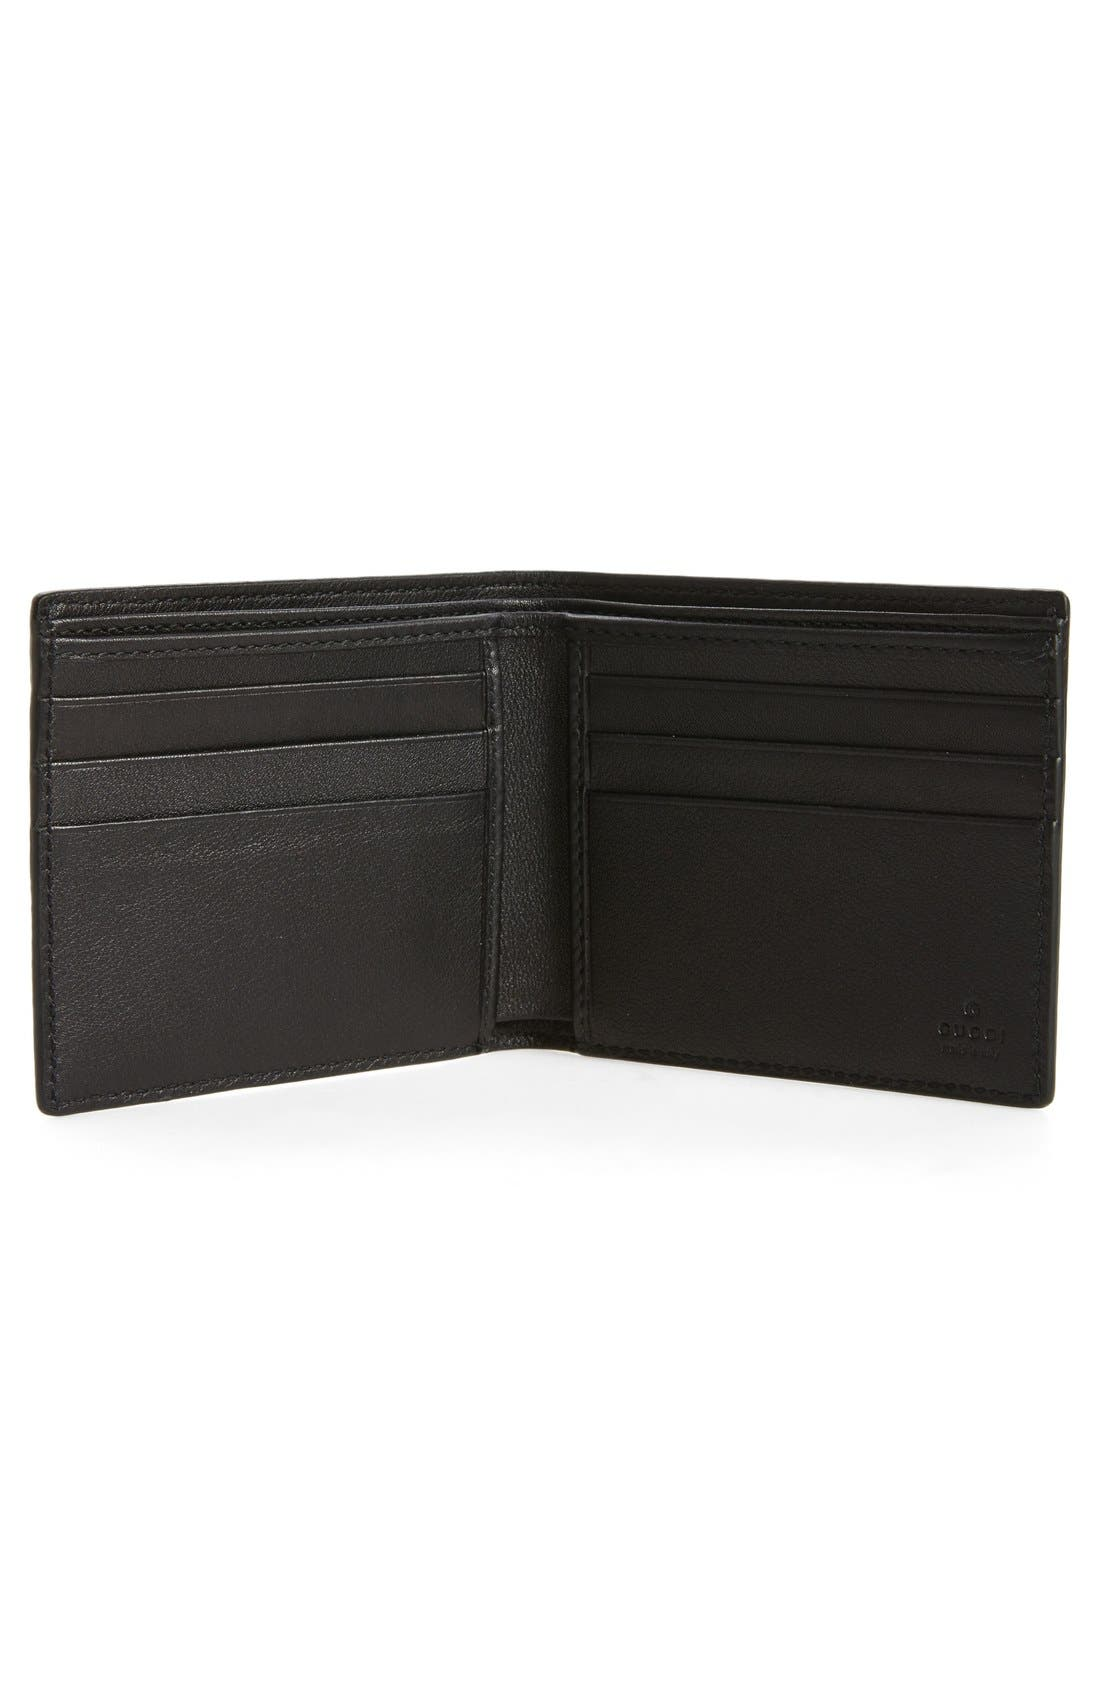 Logo Embossed Calfskin Leather Wallet,                             Alternate thumbnail 2, color,                             002